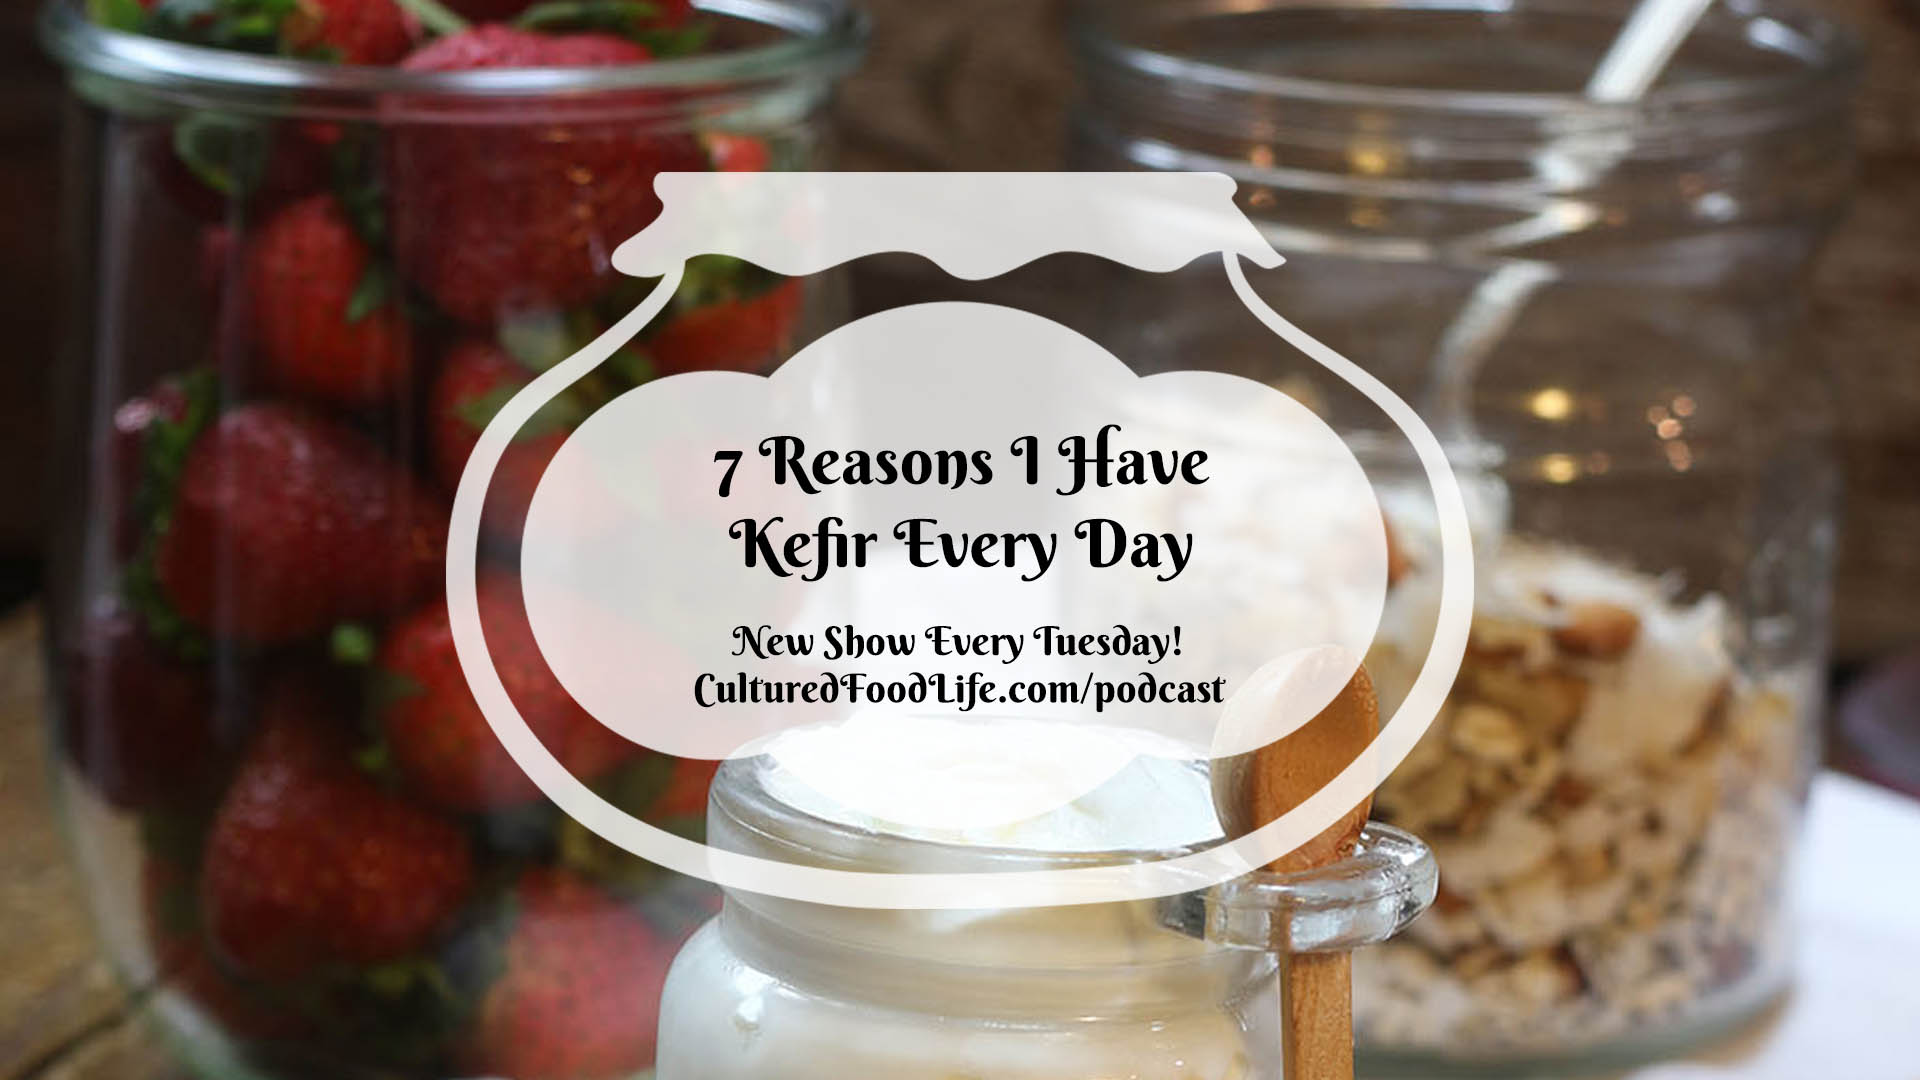 7 Reasons I Have Kefir Every Day